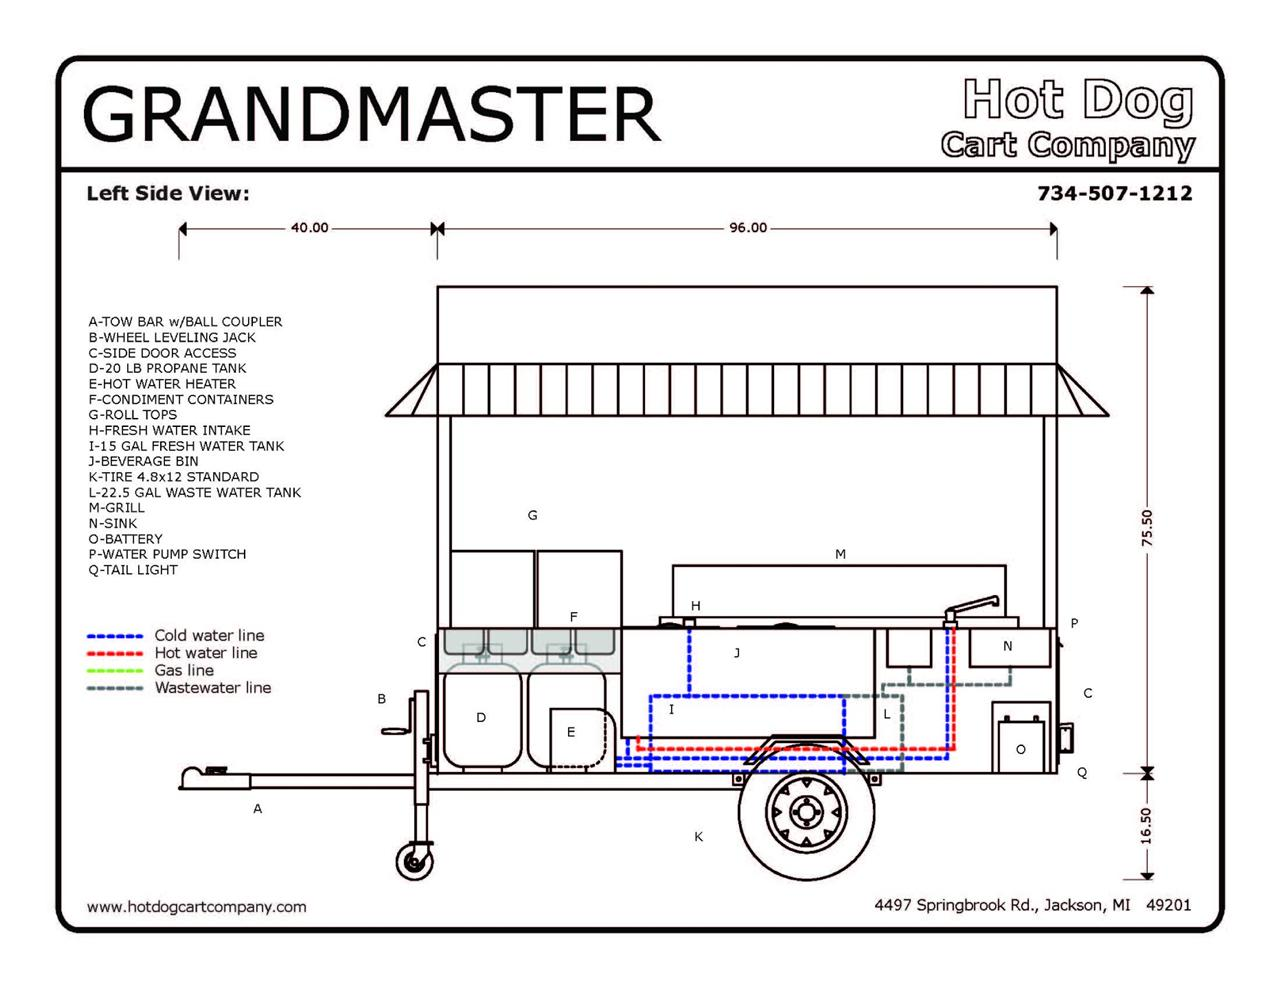 grand master hot dog cart vending concession trailer brand